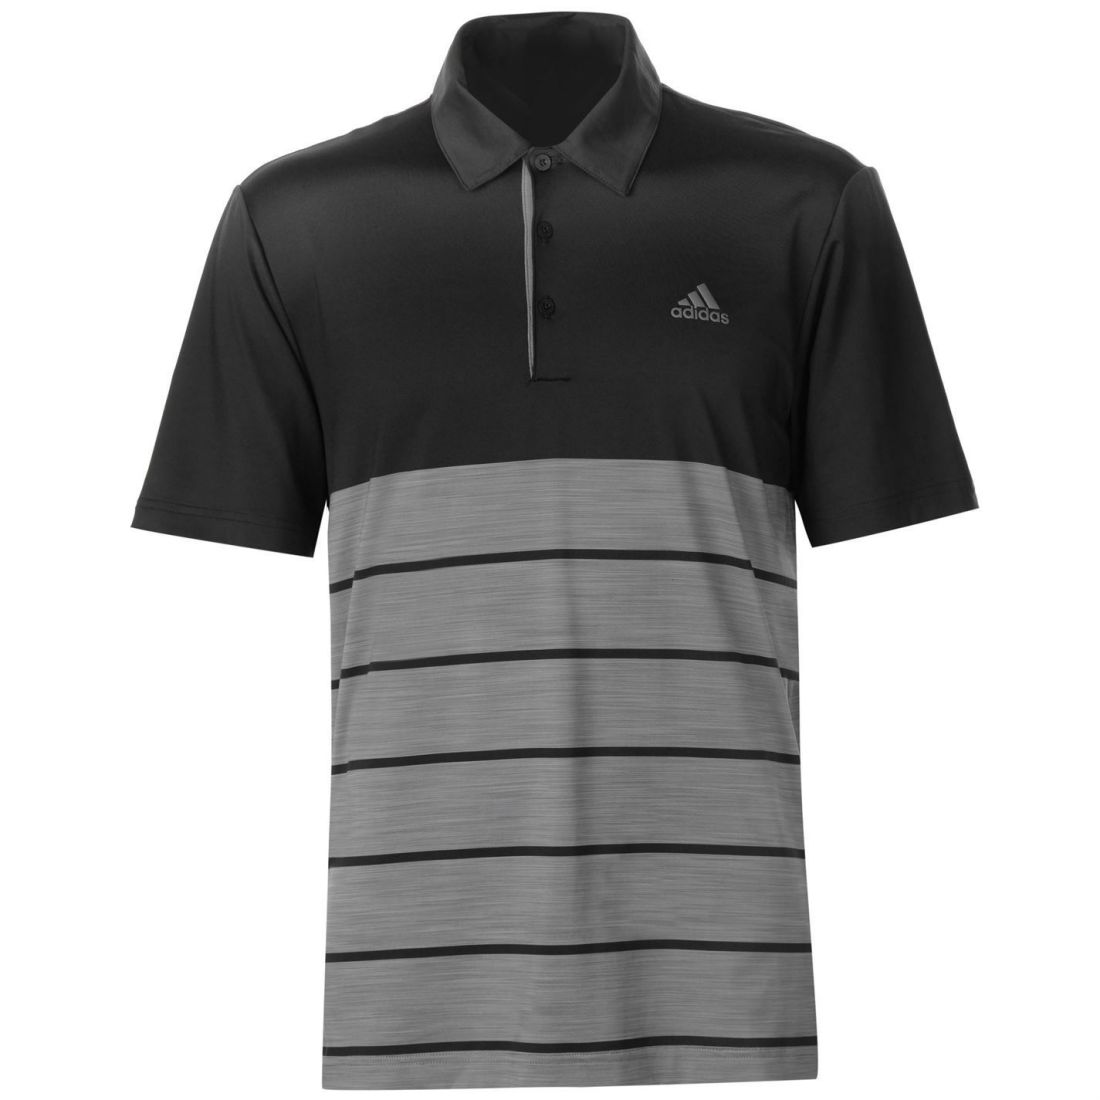 86a54132 Image is loading adidas-Ultimate-365-Heather-Block-Polo-Shirt-Mens-